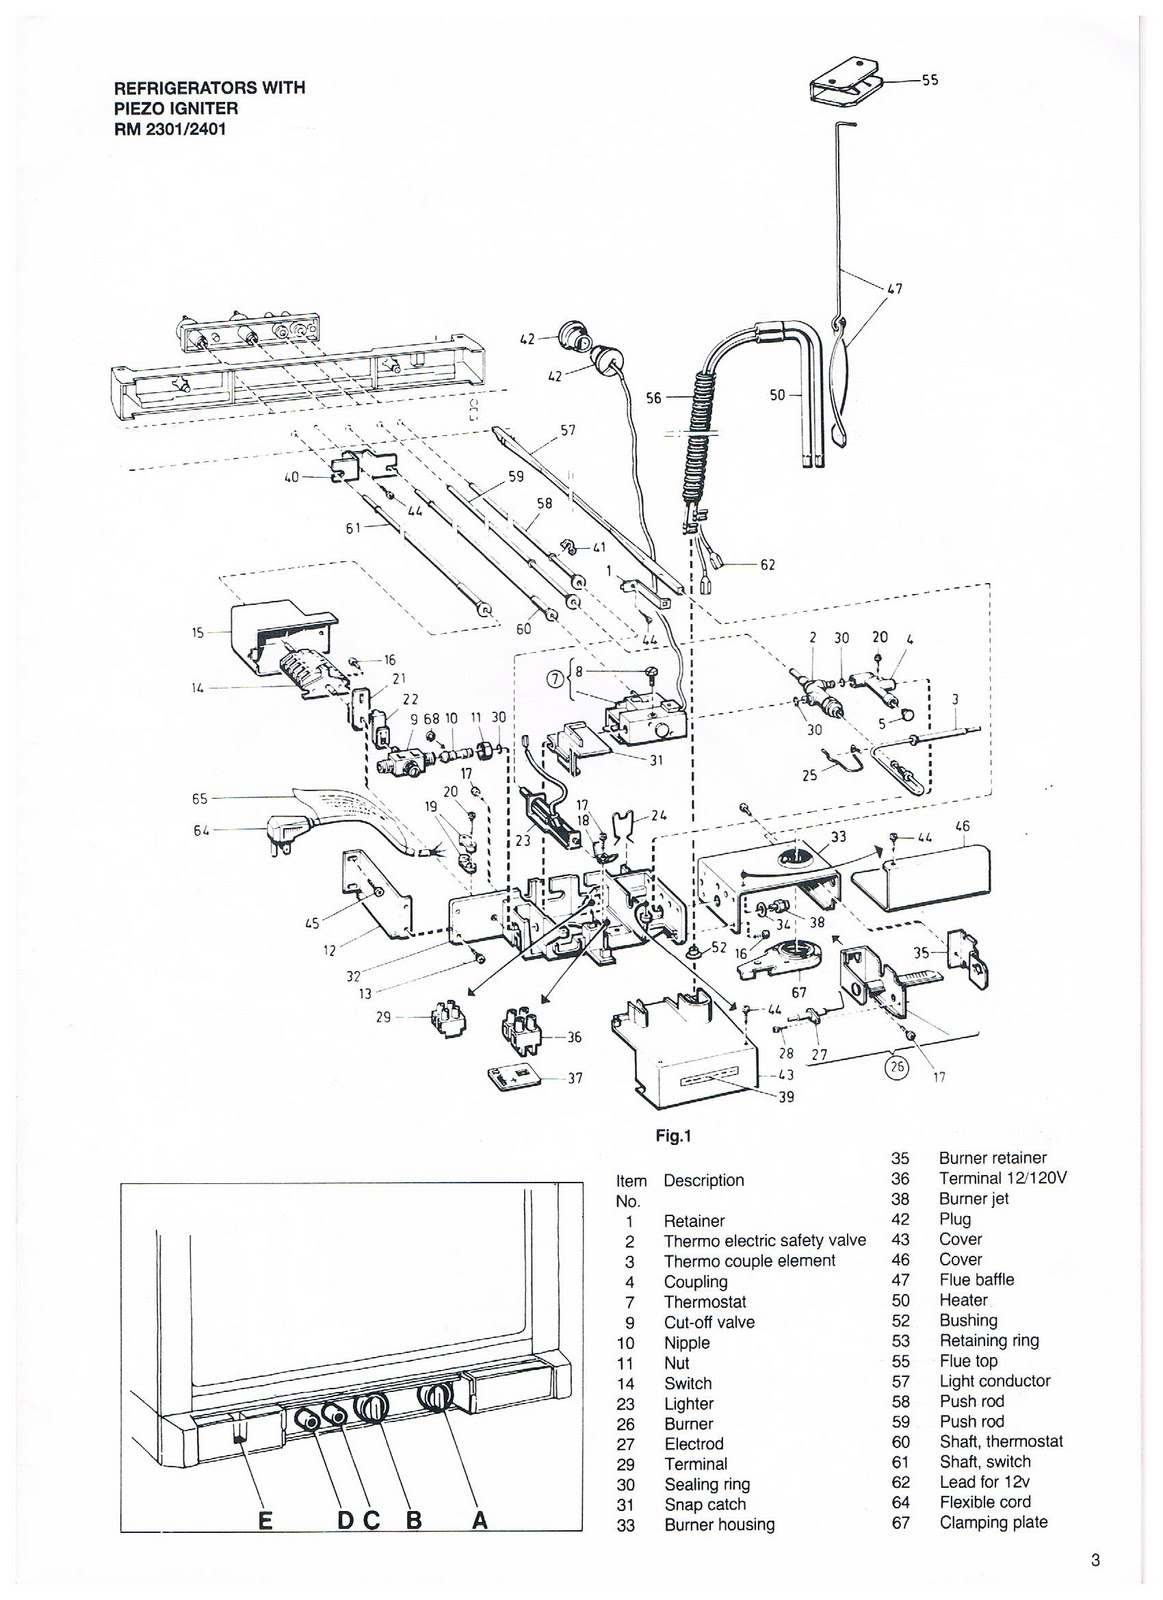 1983 Pace Arrow Motorhome Wiring Diagram - WIRE Center • Battery Wiring Diagram Fleetwood Motorhome Eleganza on fleetwood mallard wiring diagram, fleetwood bounder electrical diagram, country coach wiring diagram, fleetwood motorhome parts, fleetwood rv battery diagram, fleetwood mobile home wiring diagram, fleetwood southwind motorhome, ford 7 pin wiring diagram, fleetwood prowler wiring diagram, 1991 southwind motorhome electrical diagram, basic tail light wiring diagram, fleetwood discovery wiring diagram, magnetek power converter wiring diagram, fleetwood motorhome accessories, fleetwood motorhome headlights, fleetwood folding camper wiring diagram, fleetwood park model wiring diagram, fleetwood rv motorhome, coleman pop up camper wiring diagram, rv electrical diagram,